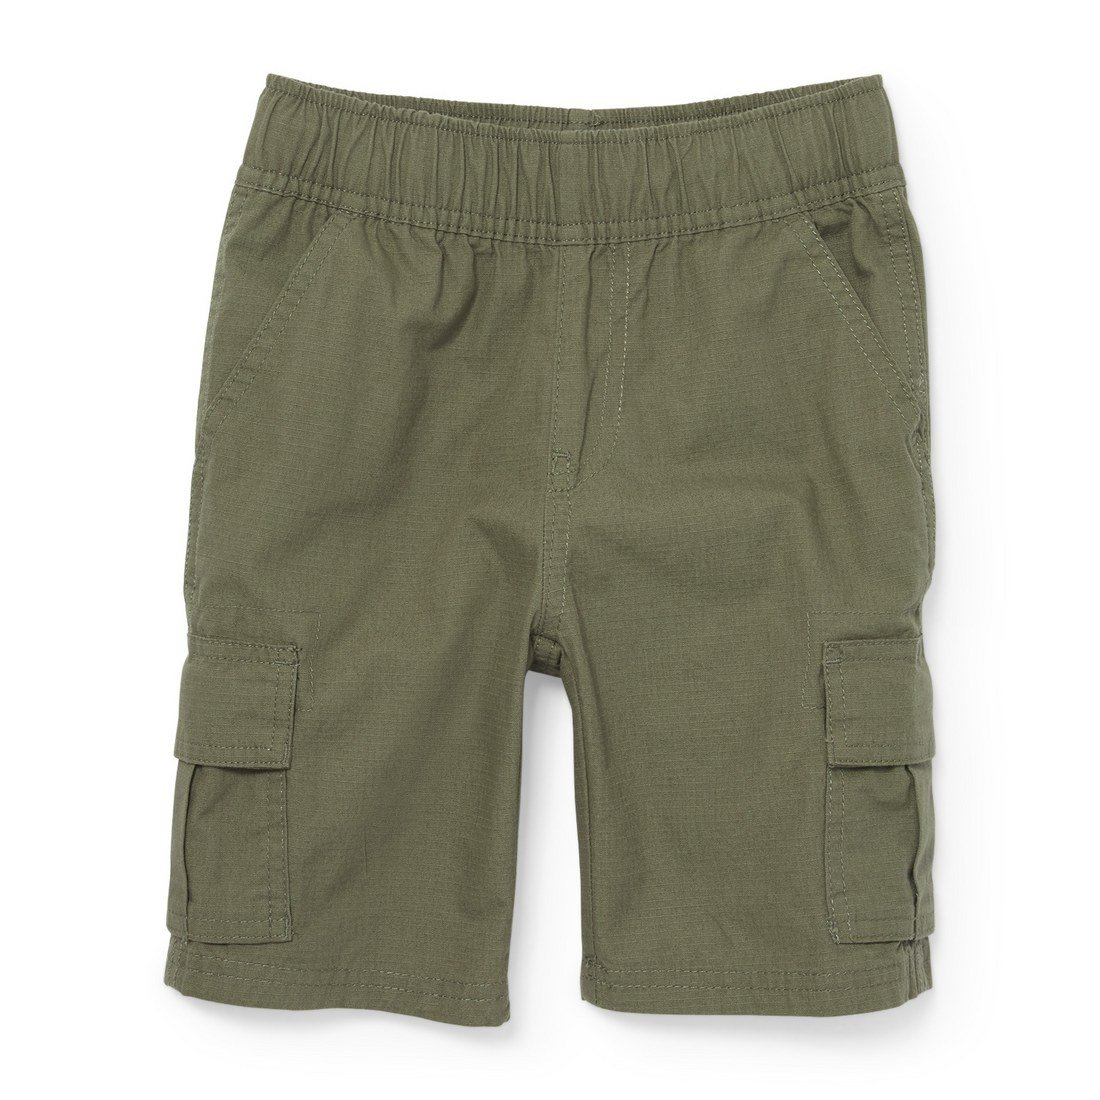 The Children's Place Boys' Big 3415 Pull On Cargo Short The Children's Place 2094137